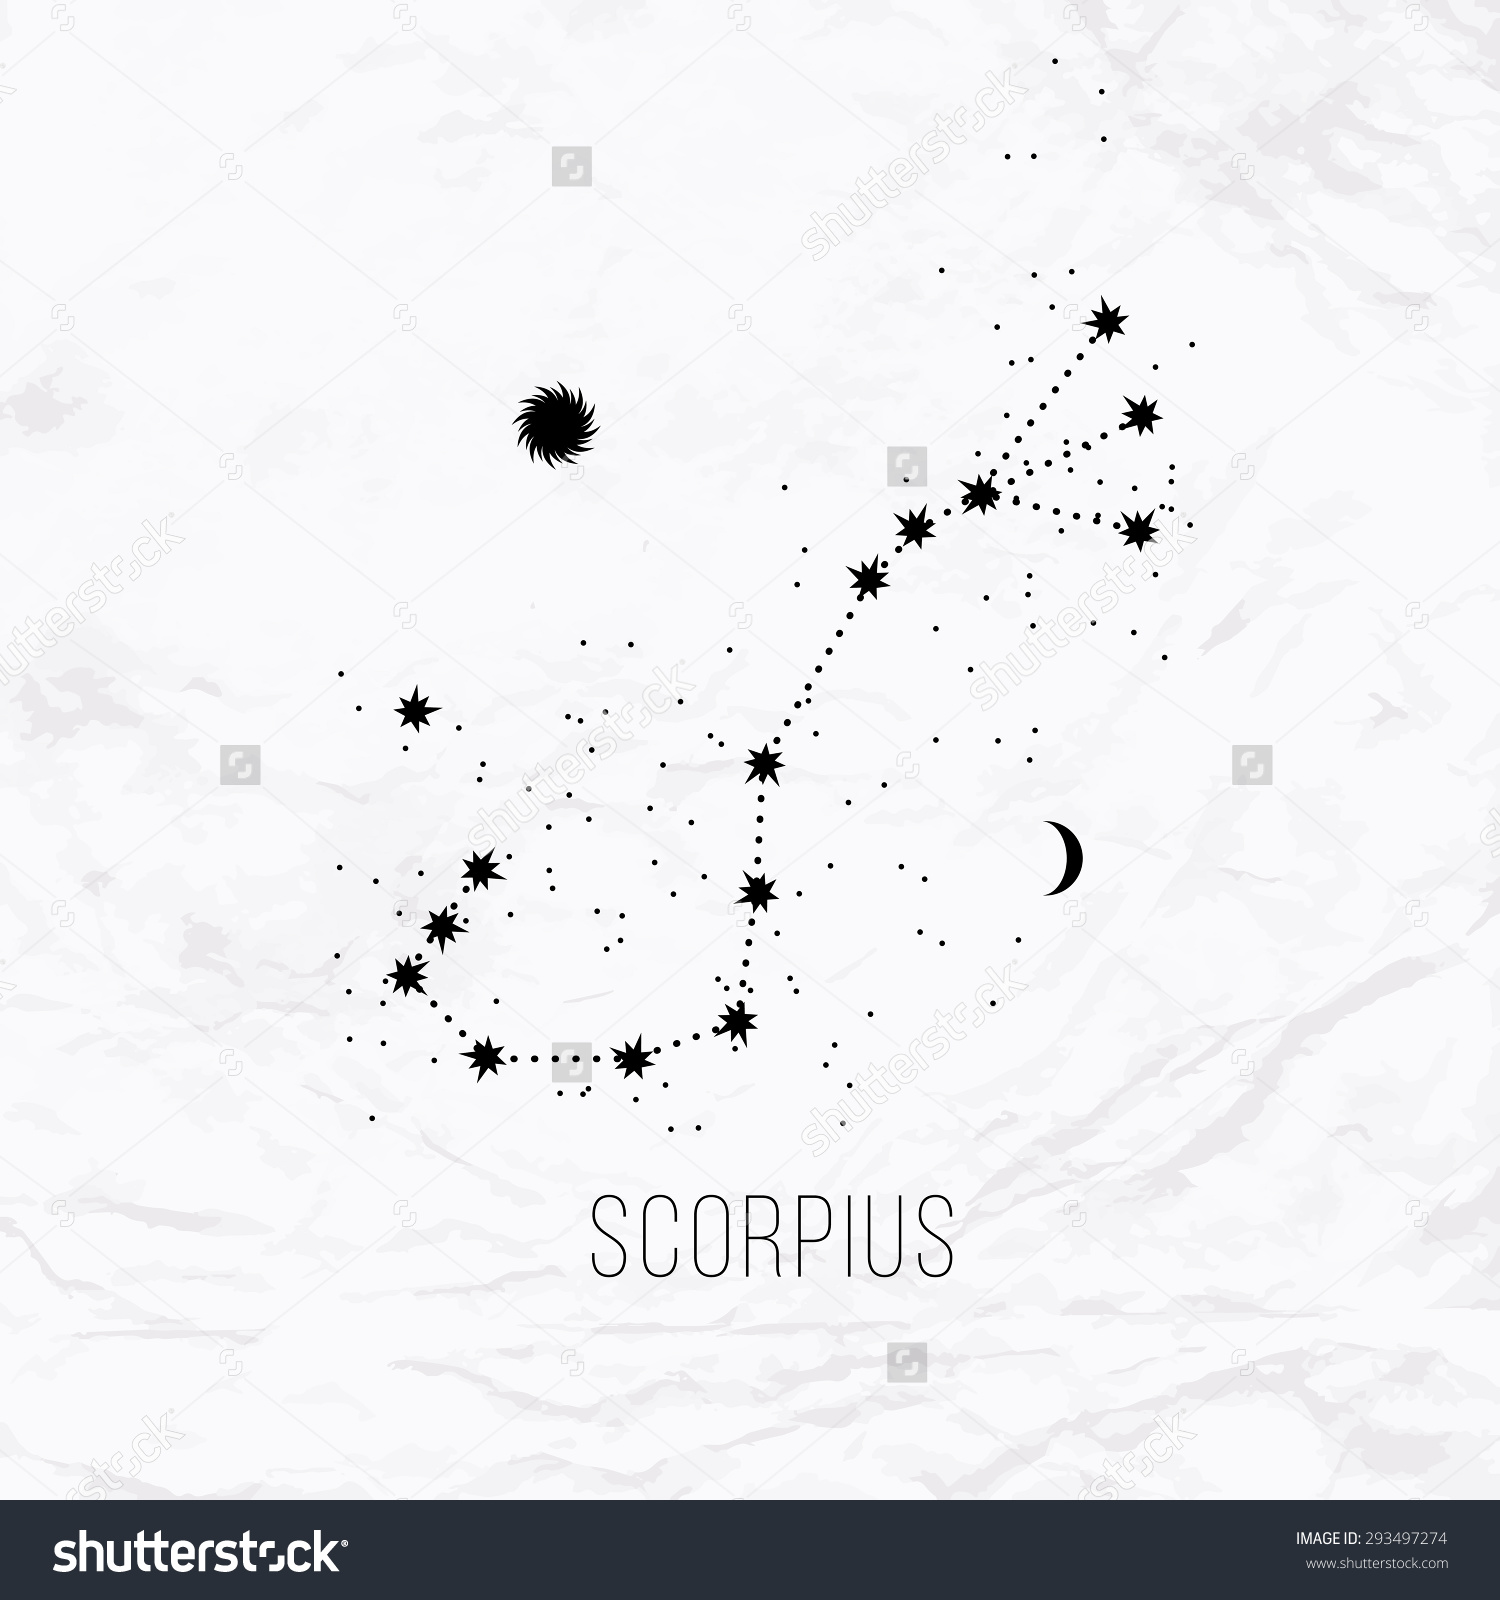 scorpio constellation tattoo.